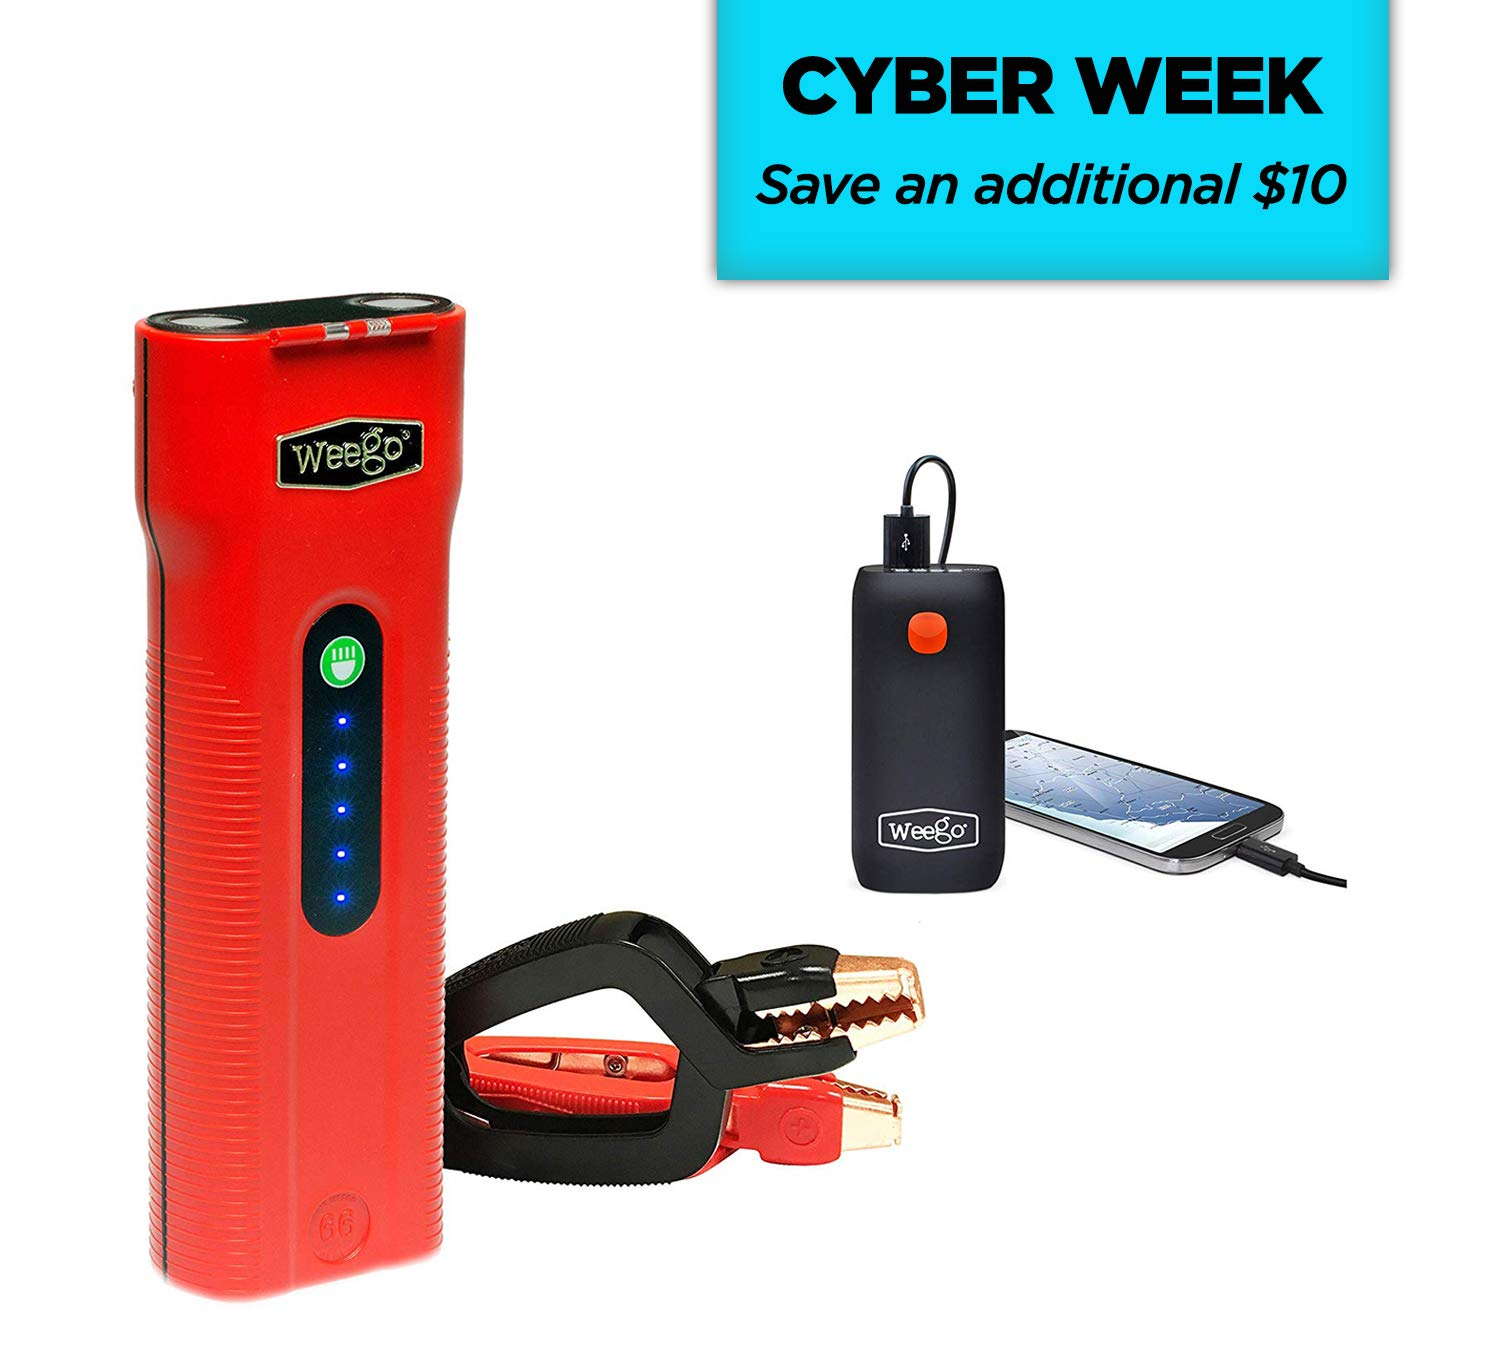 WEEGO 66.1 Jump Starting Power Pack (NEW 2019 Model) 2500 Peak 600 Cranking Amps High Performance Lithium Ion Jump Starter Quick Charges Phones 600 Lumen LED Flashlight Water Resistant by Weego (Image #1)